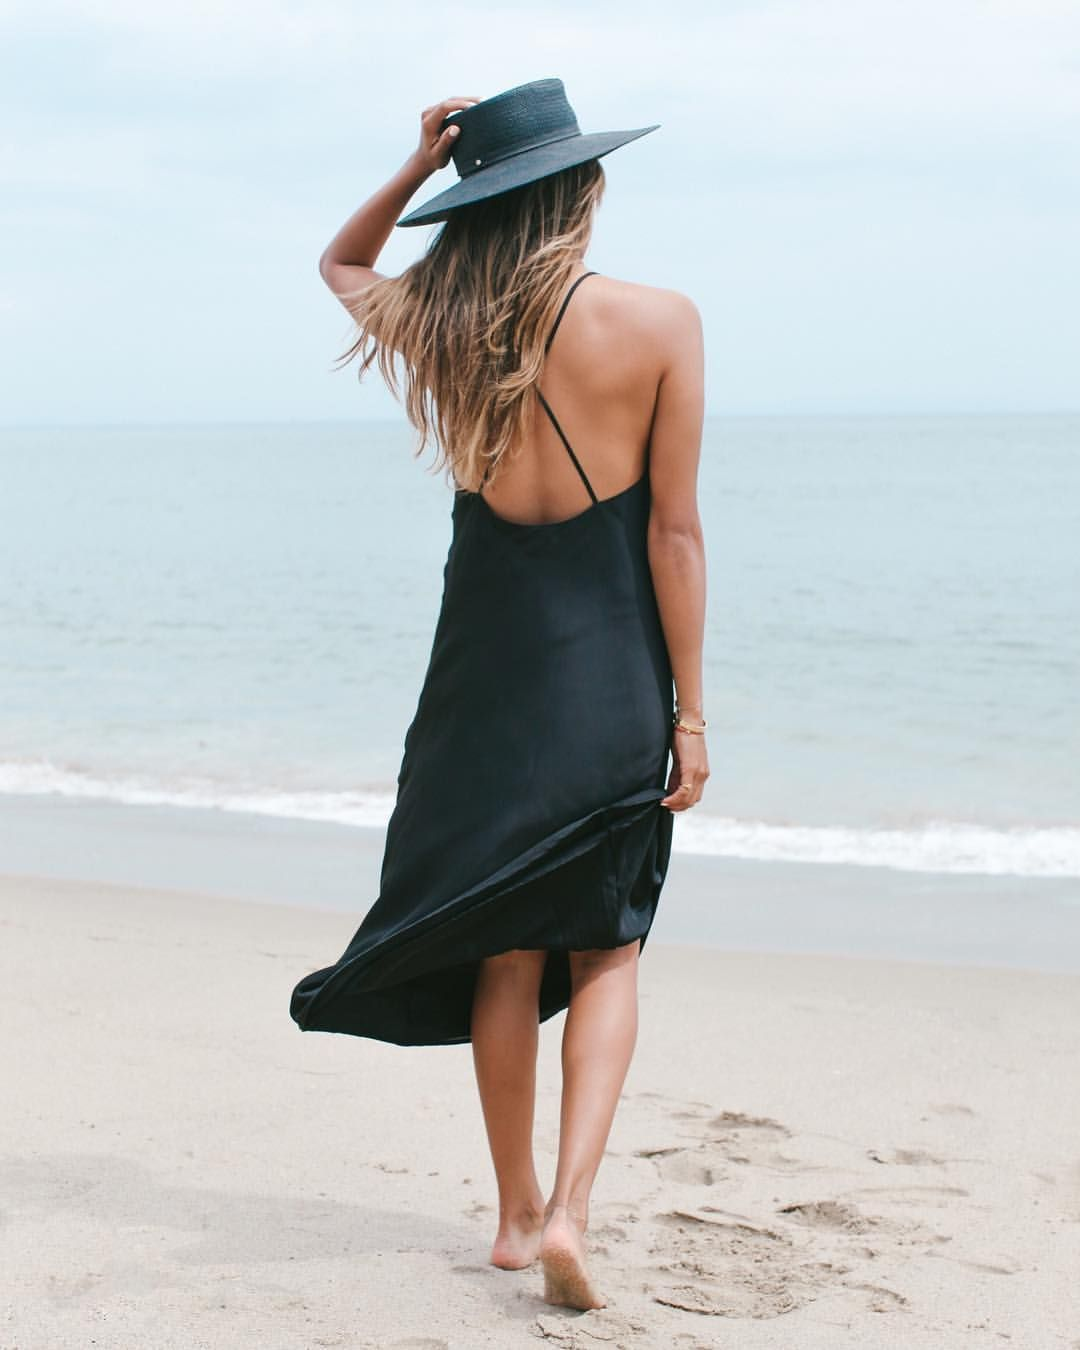 Shop Sincerely Jules On Instagram Breezy Beach Days Were Made For